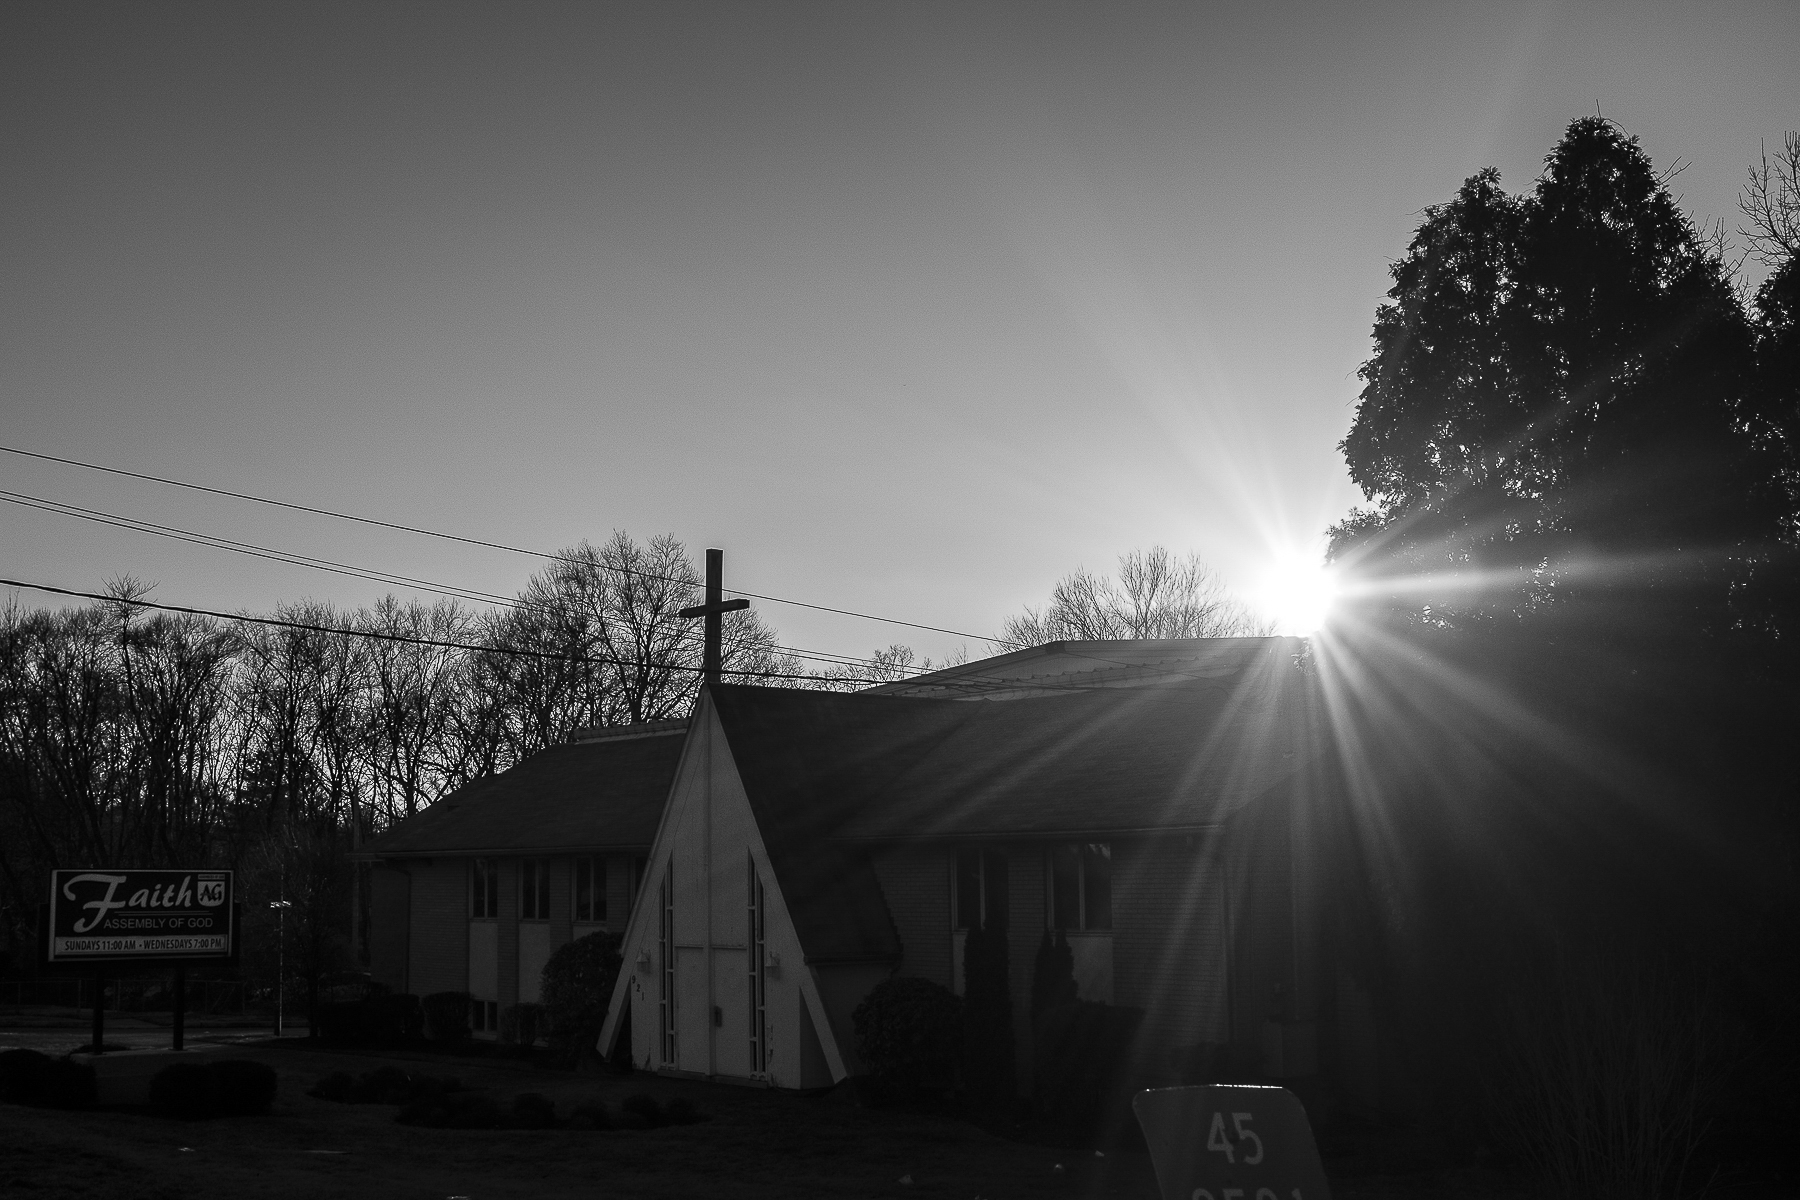 Also on Chestnut Ridge Road sits one of the few churches in town.